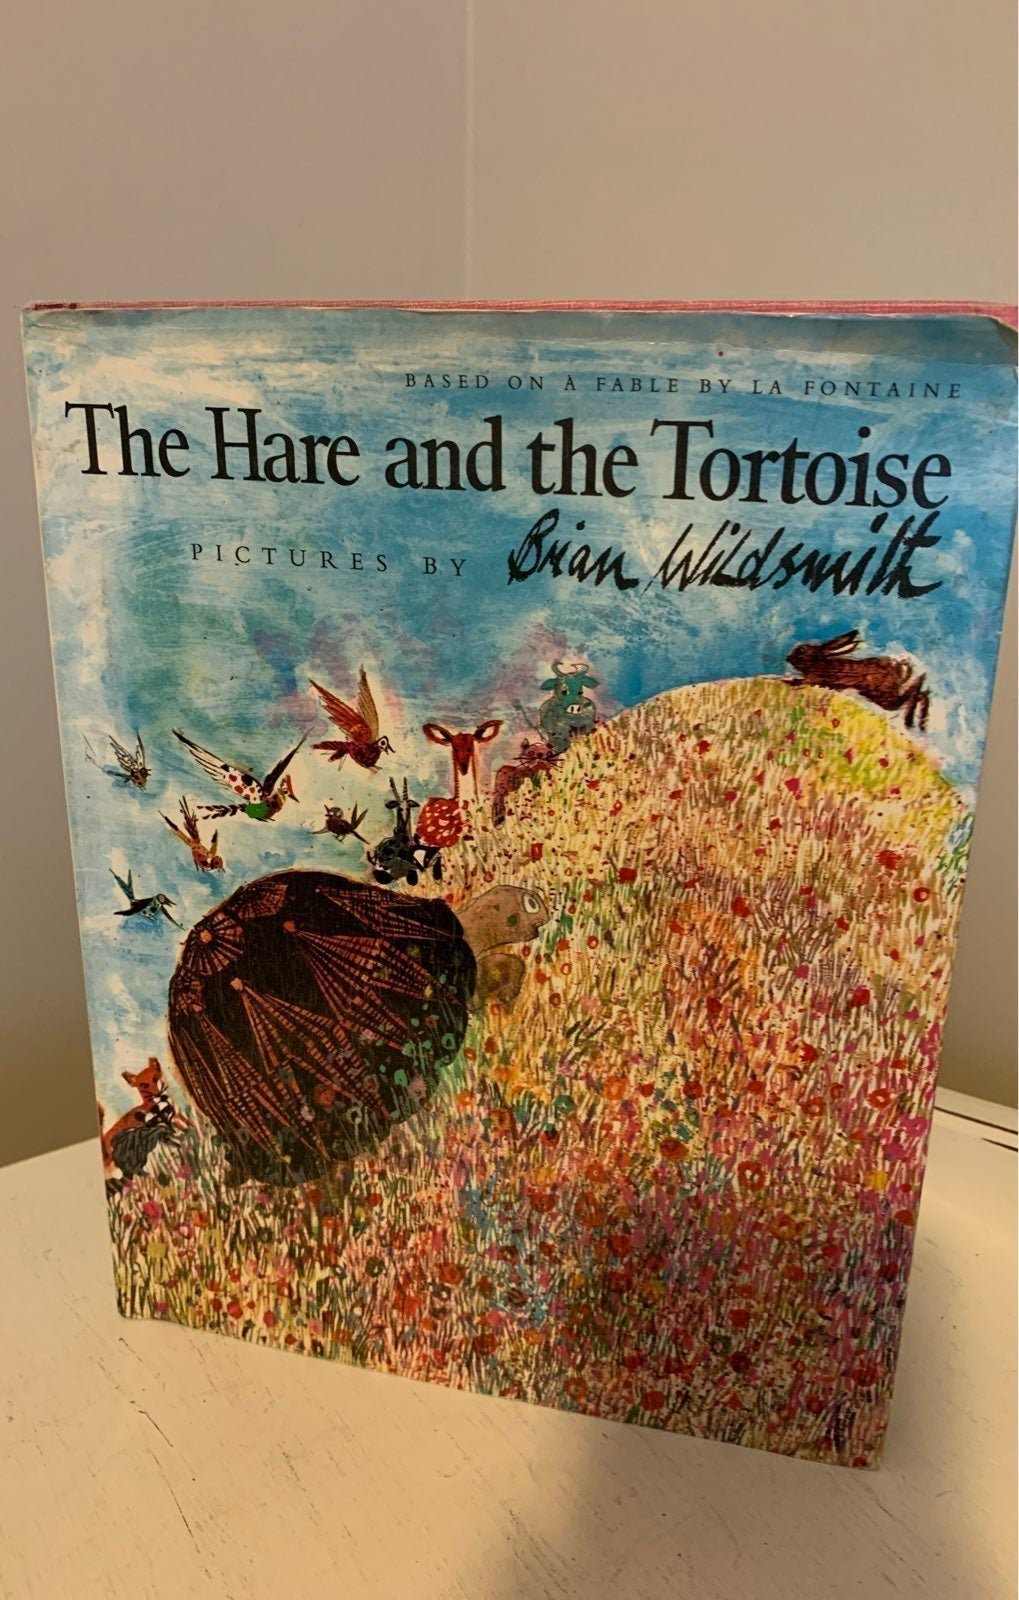 1969 The Hare and the Tortoise (Rare boo